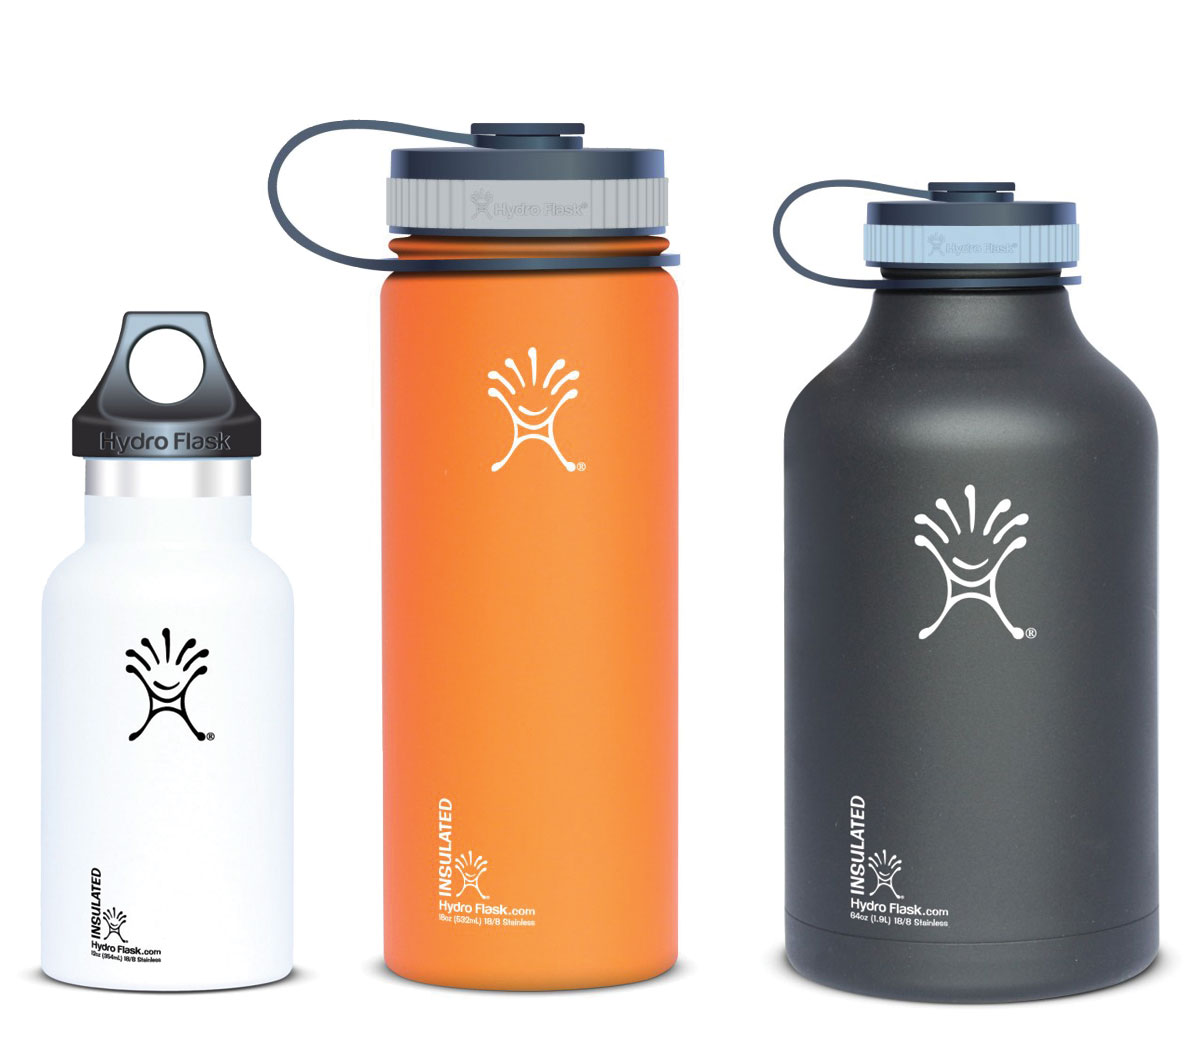 Hydro Flask: Double-Walled Steel Water Bottles